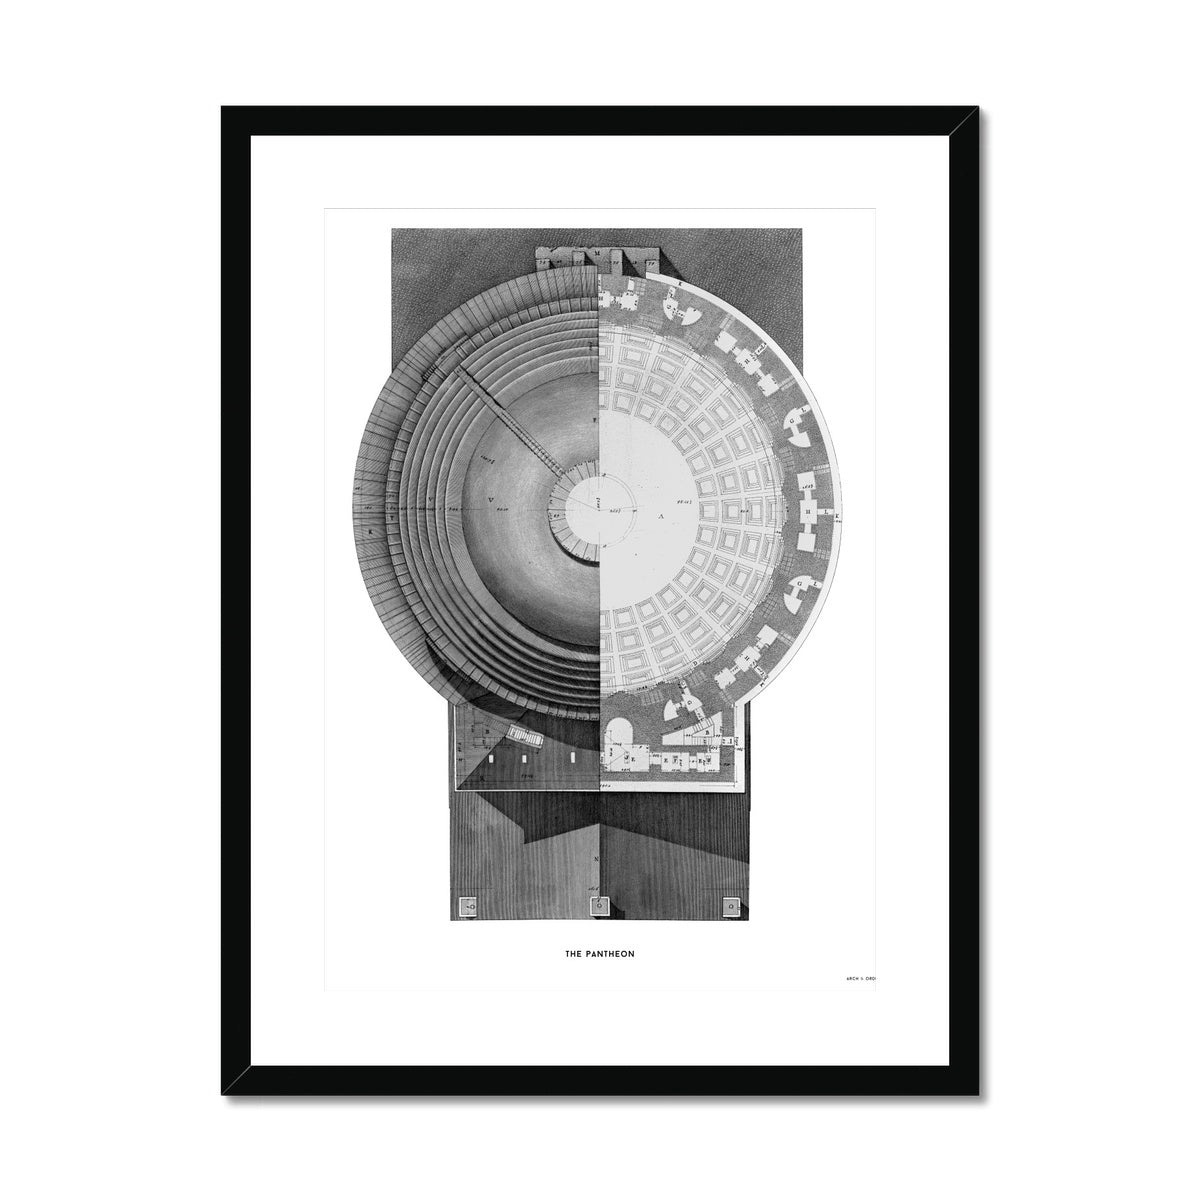 The Pantheon - Top Elevation -  Framed & Mounted Print